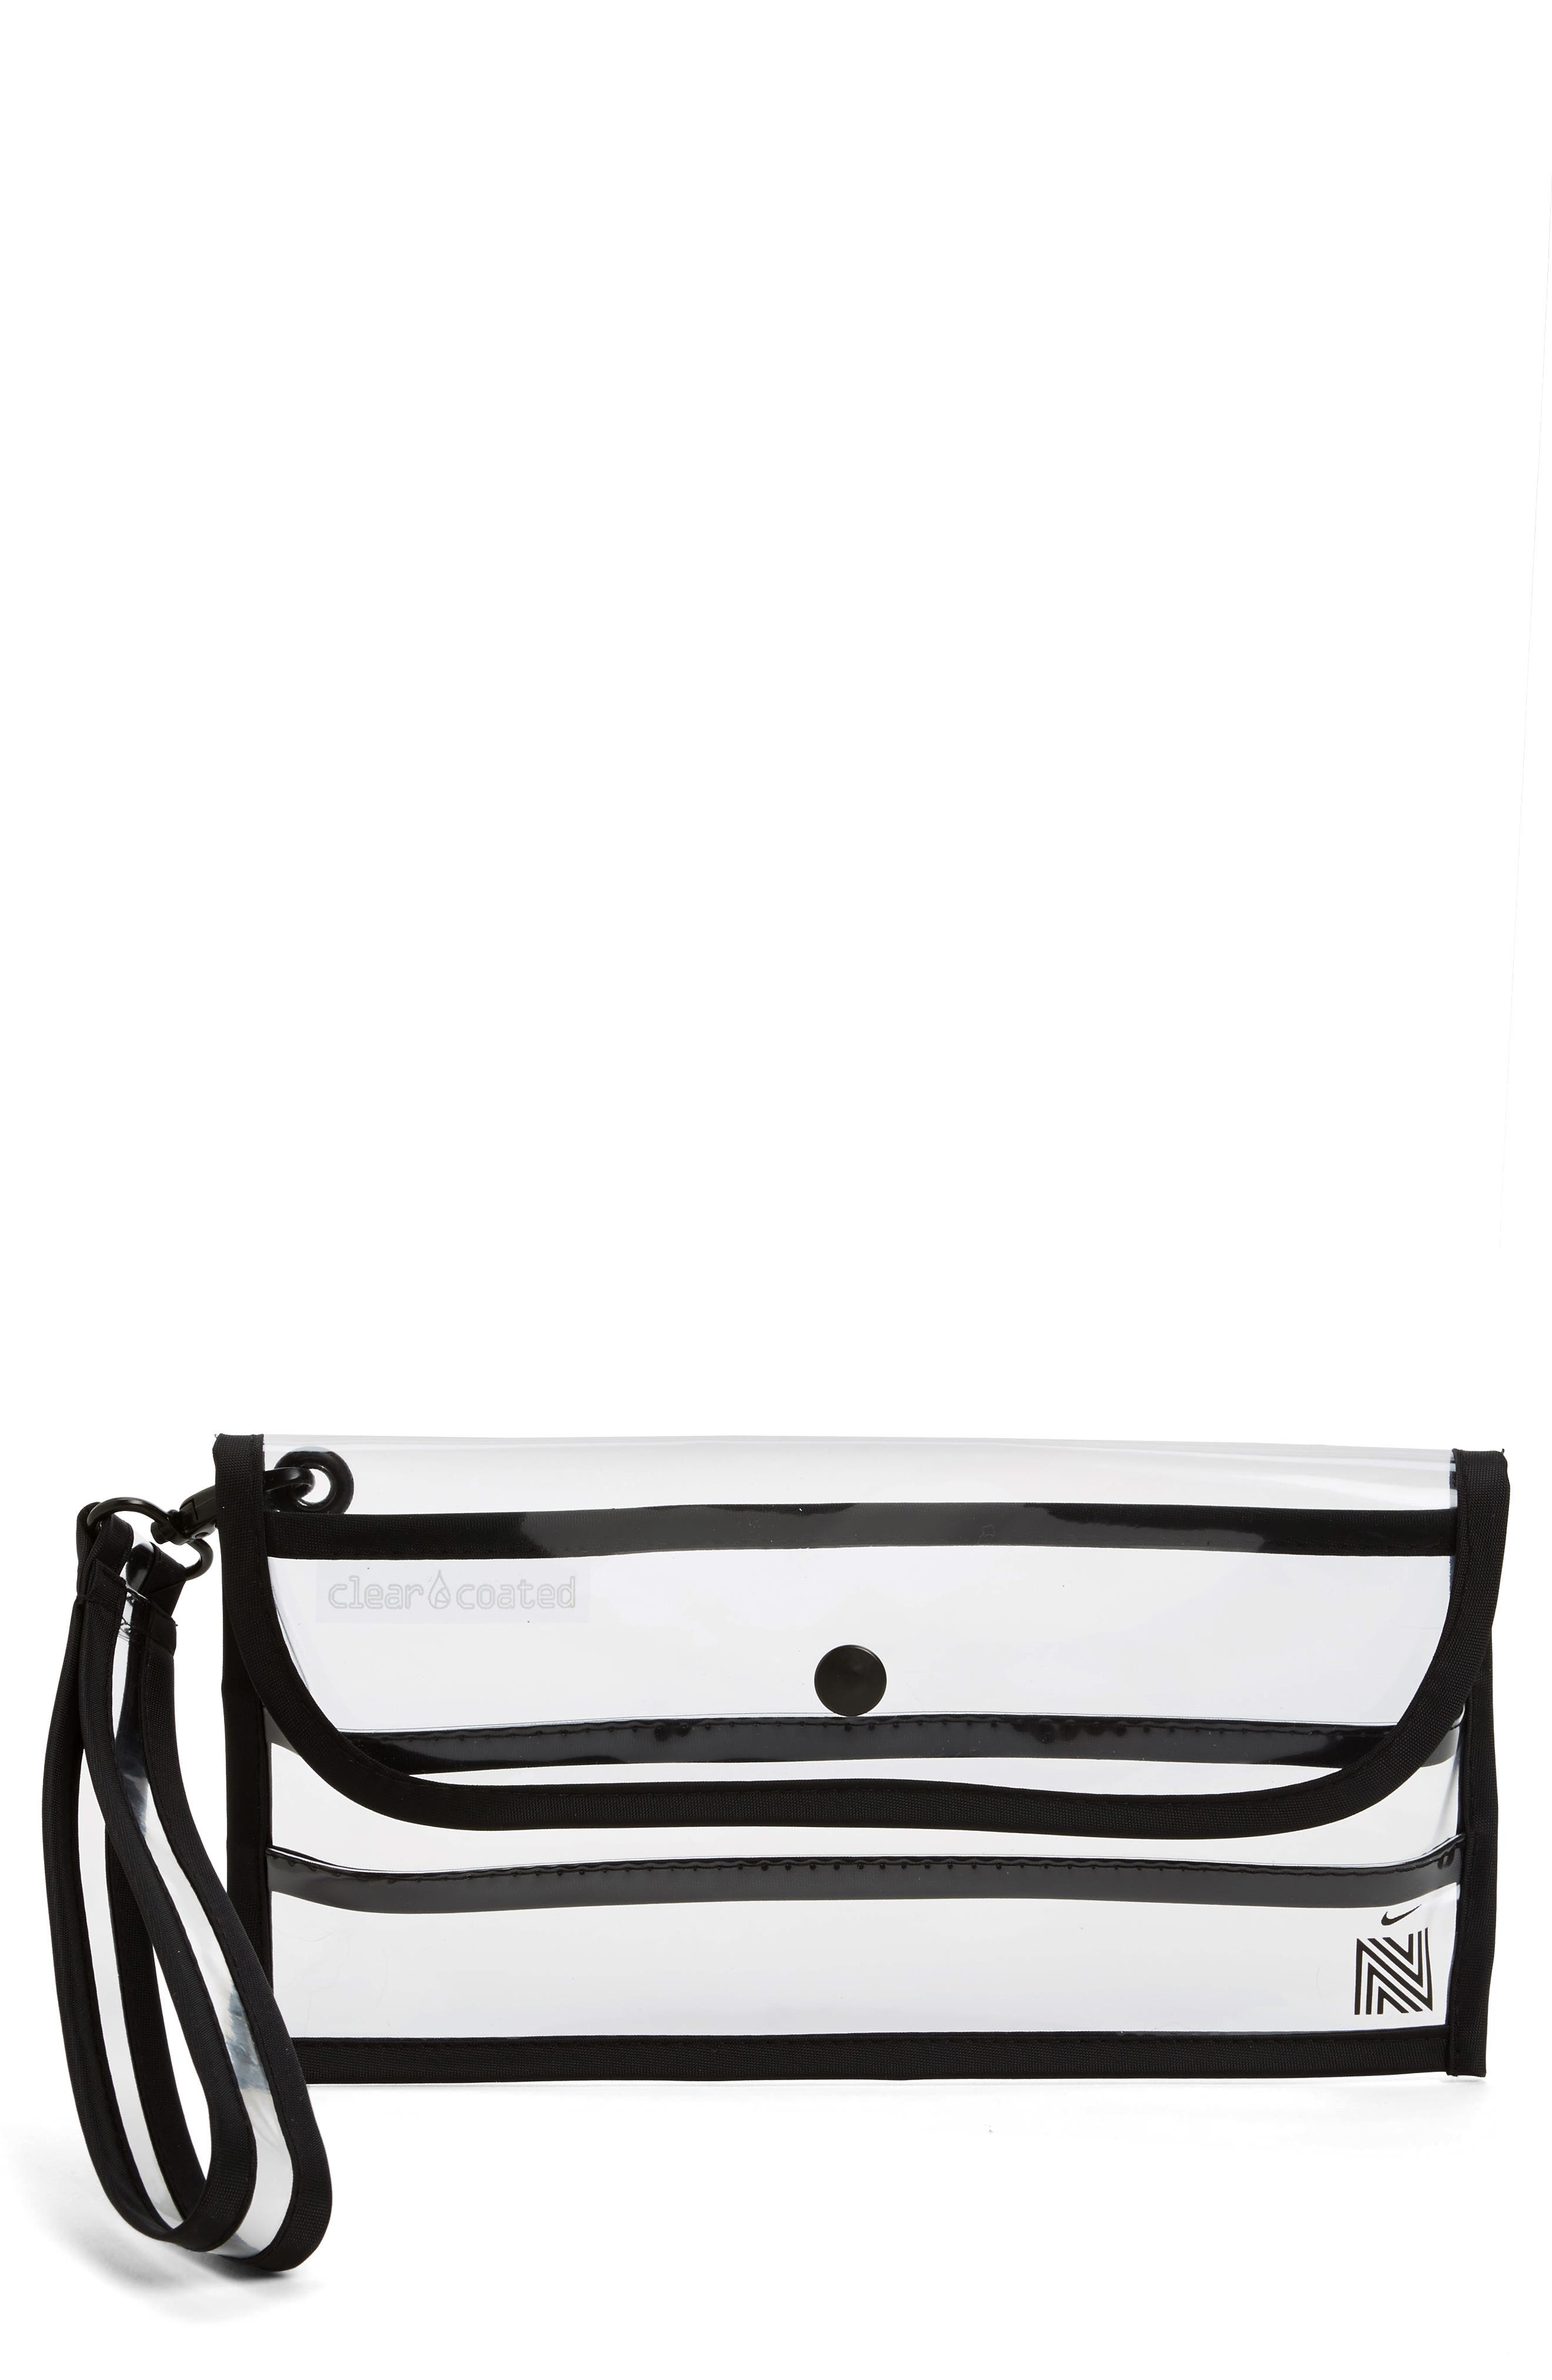 Clear Coated Nordstrom x Nike Translucent Wristlet Clutch,                             Main thumbnail 1, color,                             960